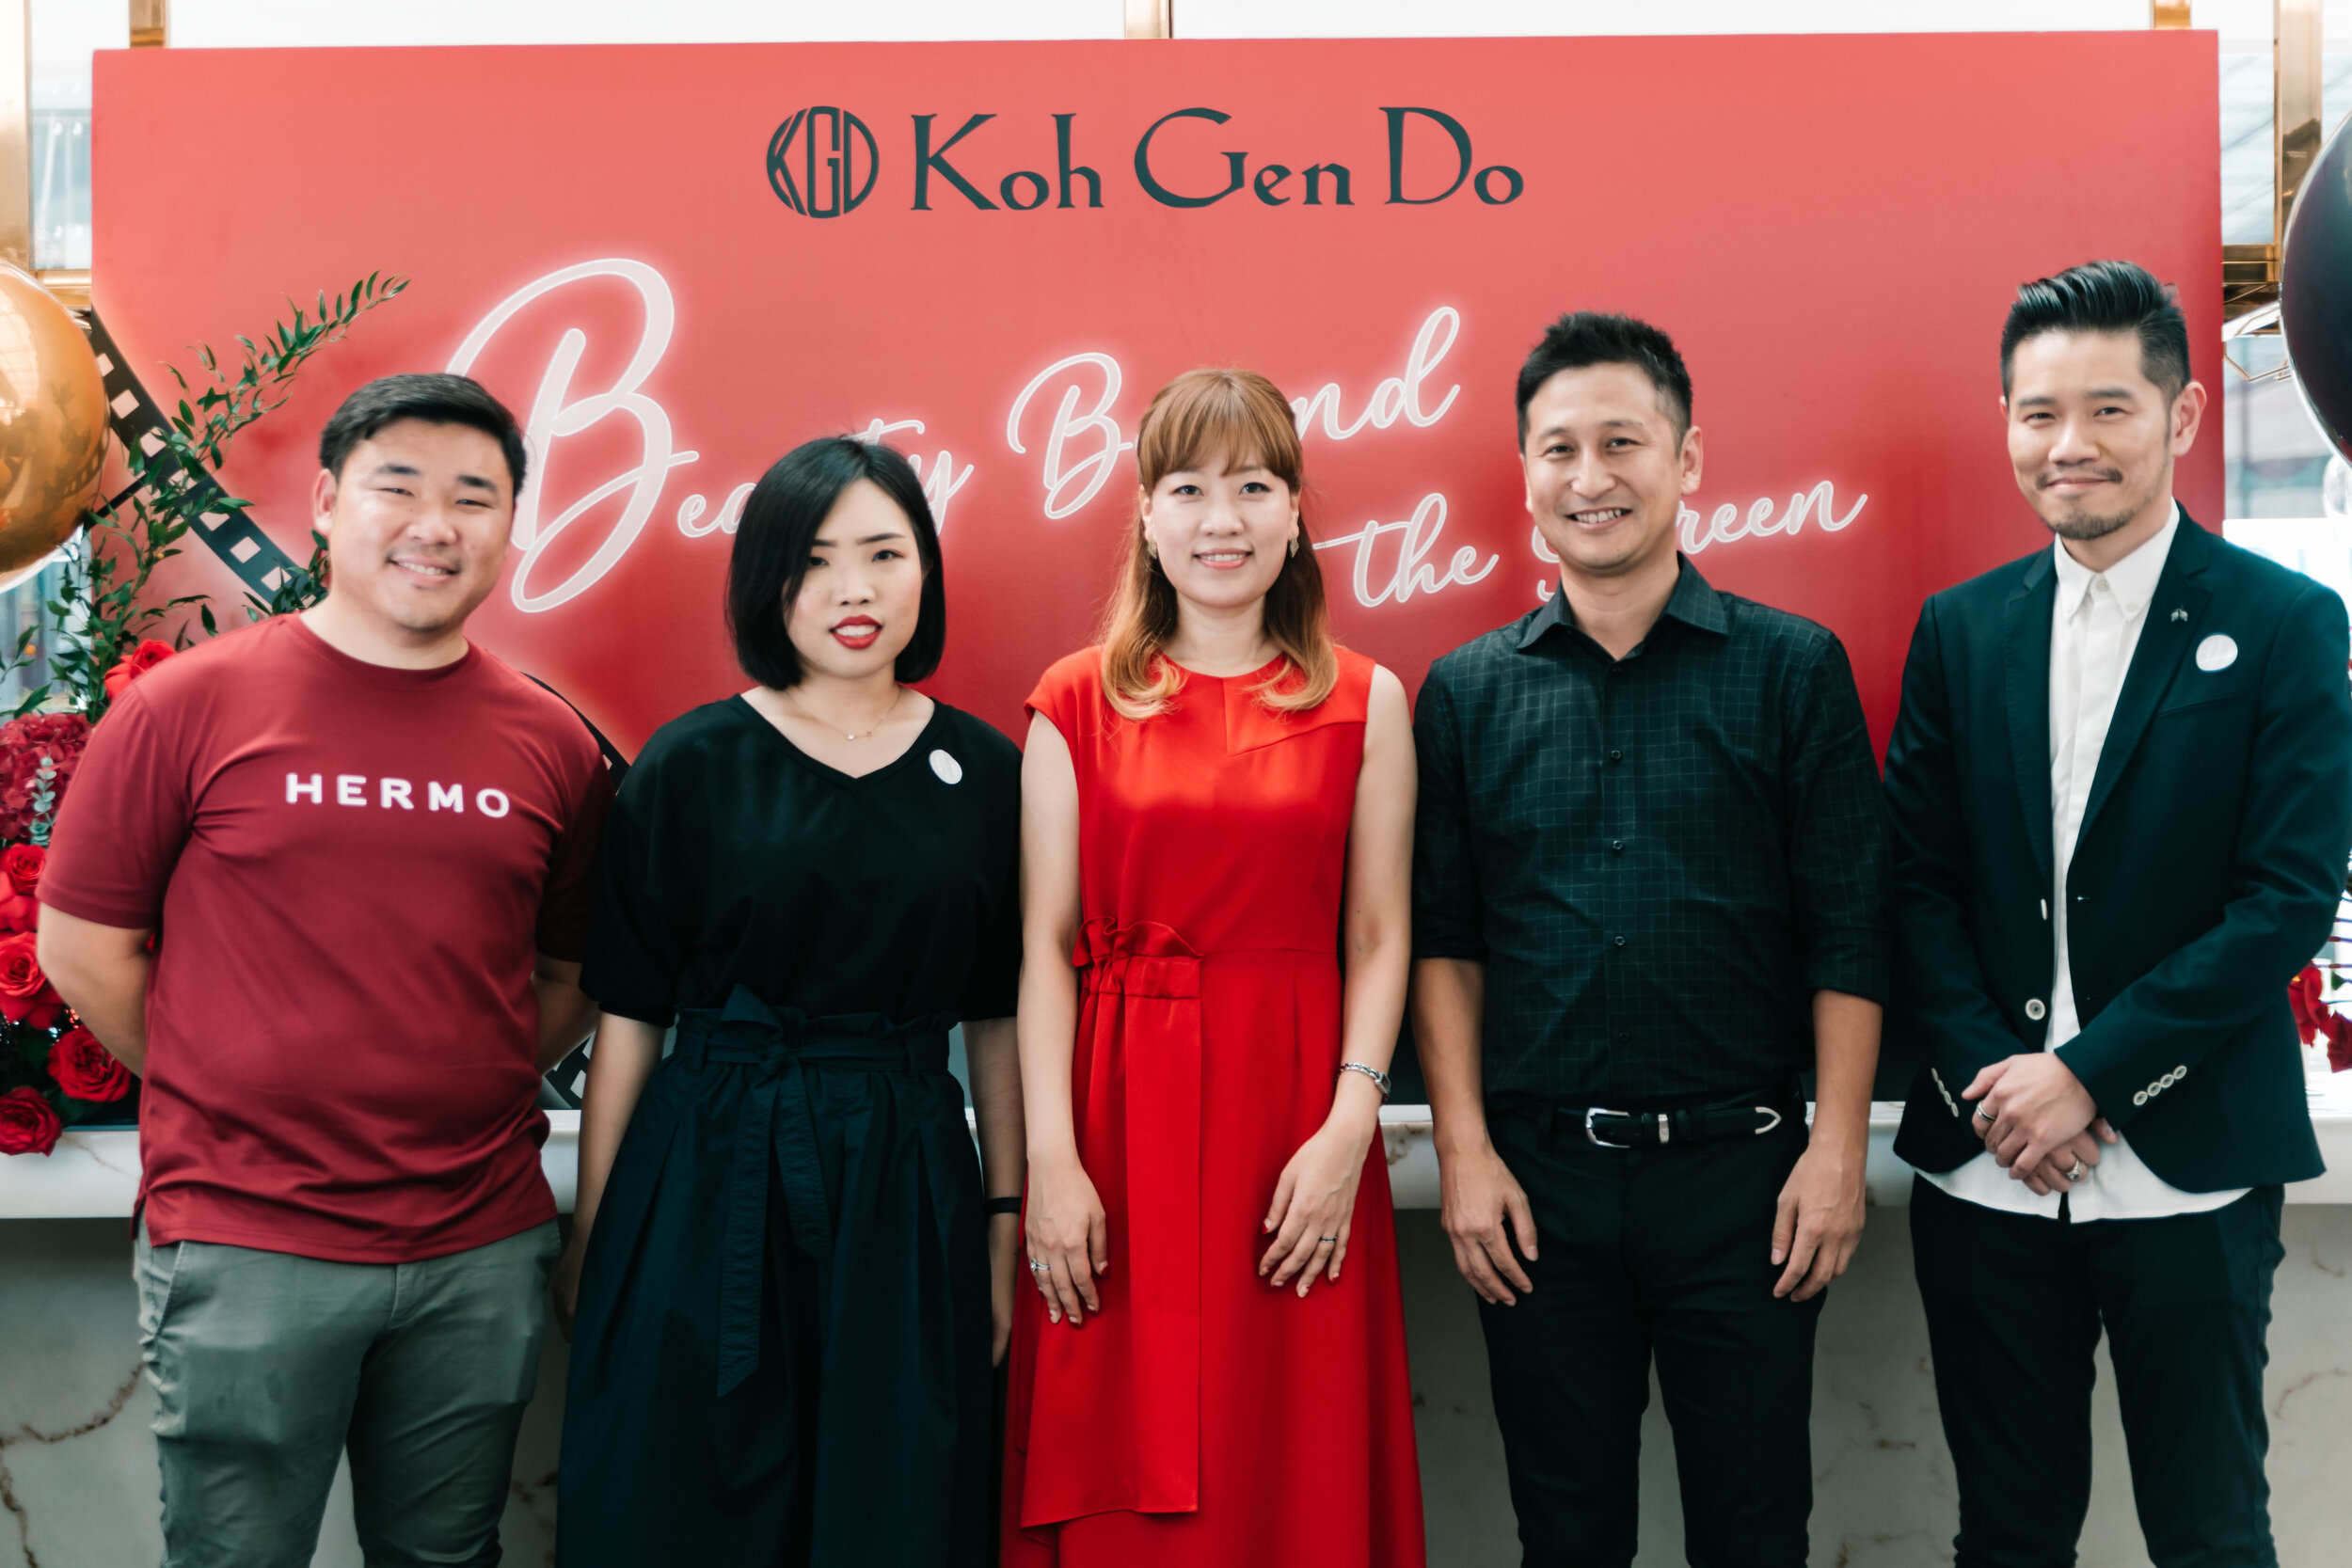 The official launch of Koh Gen Do in Malaysia, bringing to Malaysian beauty enthusiasts, cosmetics that is loved by Hollywood superstars and celebrities. - ( Left to Right ) : Mr Chin Seng, Manager of Hermo Global; Ms Melvina Lee, Perfume & Cosmetics Buyer of Air Asia X Bhd and Our Shop; Ms Yunje Jang, General Manager of Overseas Business Department, Koh Gen Do; Mr Motoya Tanaka, Senior Deputy Director of Transcosmos Malaysia Sdn Bhd and Mr Stanley Wong, Assistant General Manager of Parkson Unlimited Beauty: PLAY UP